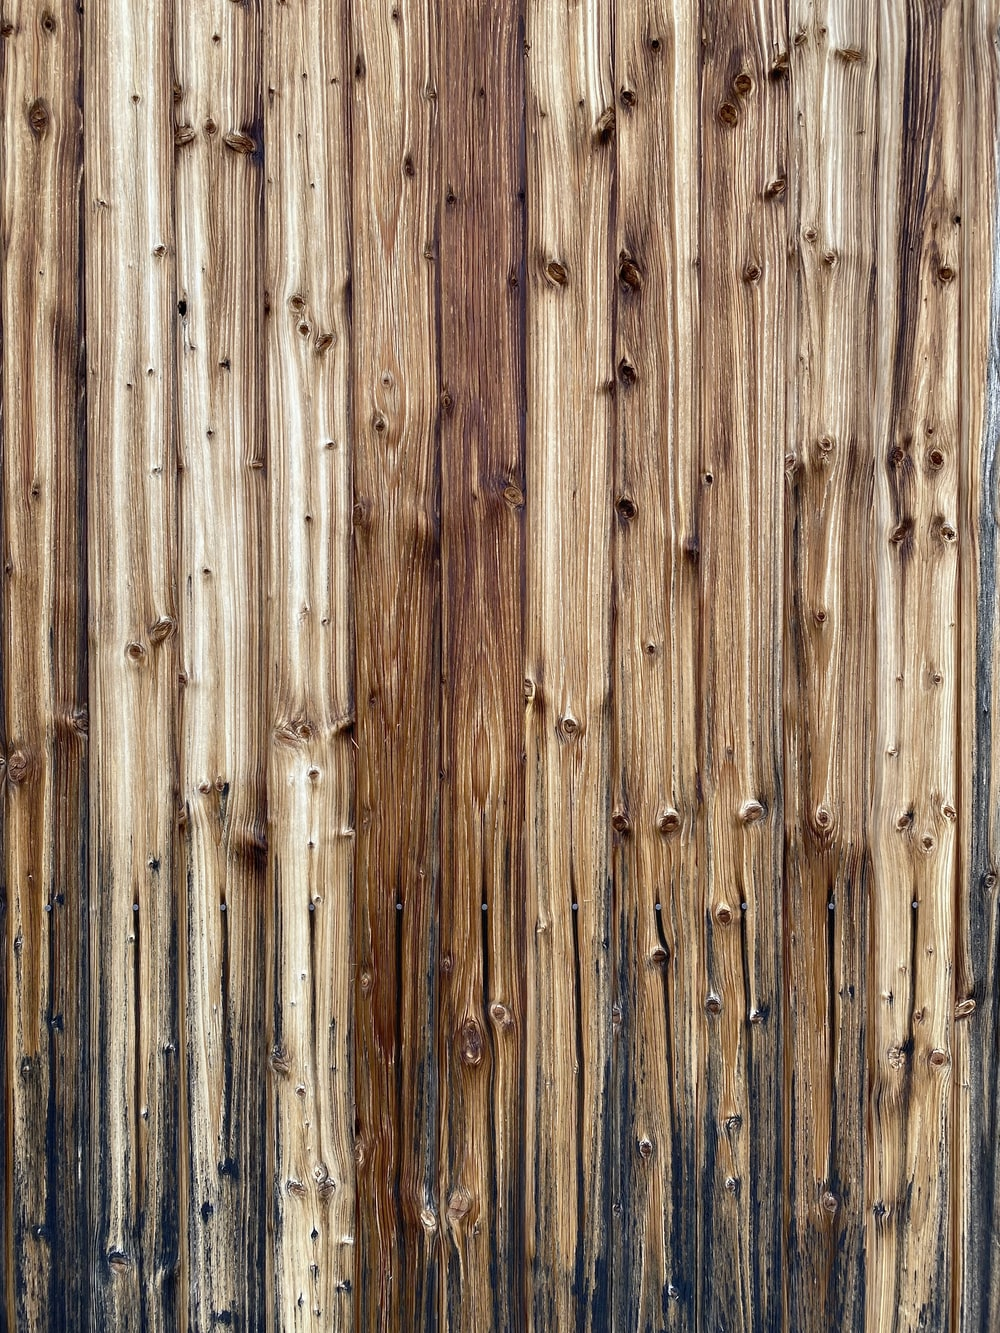 brown and gray wooden wall